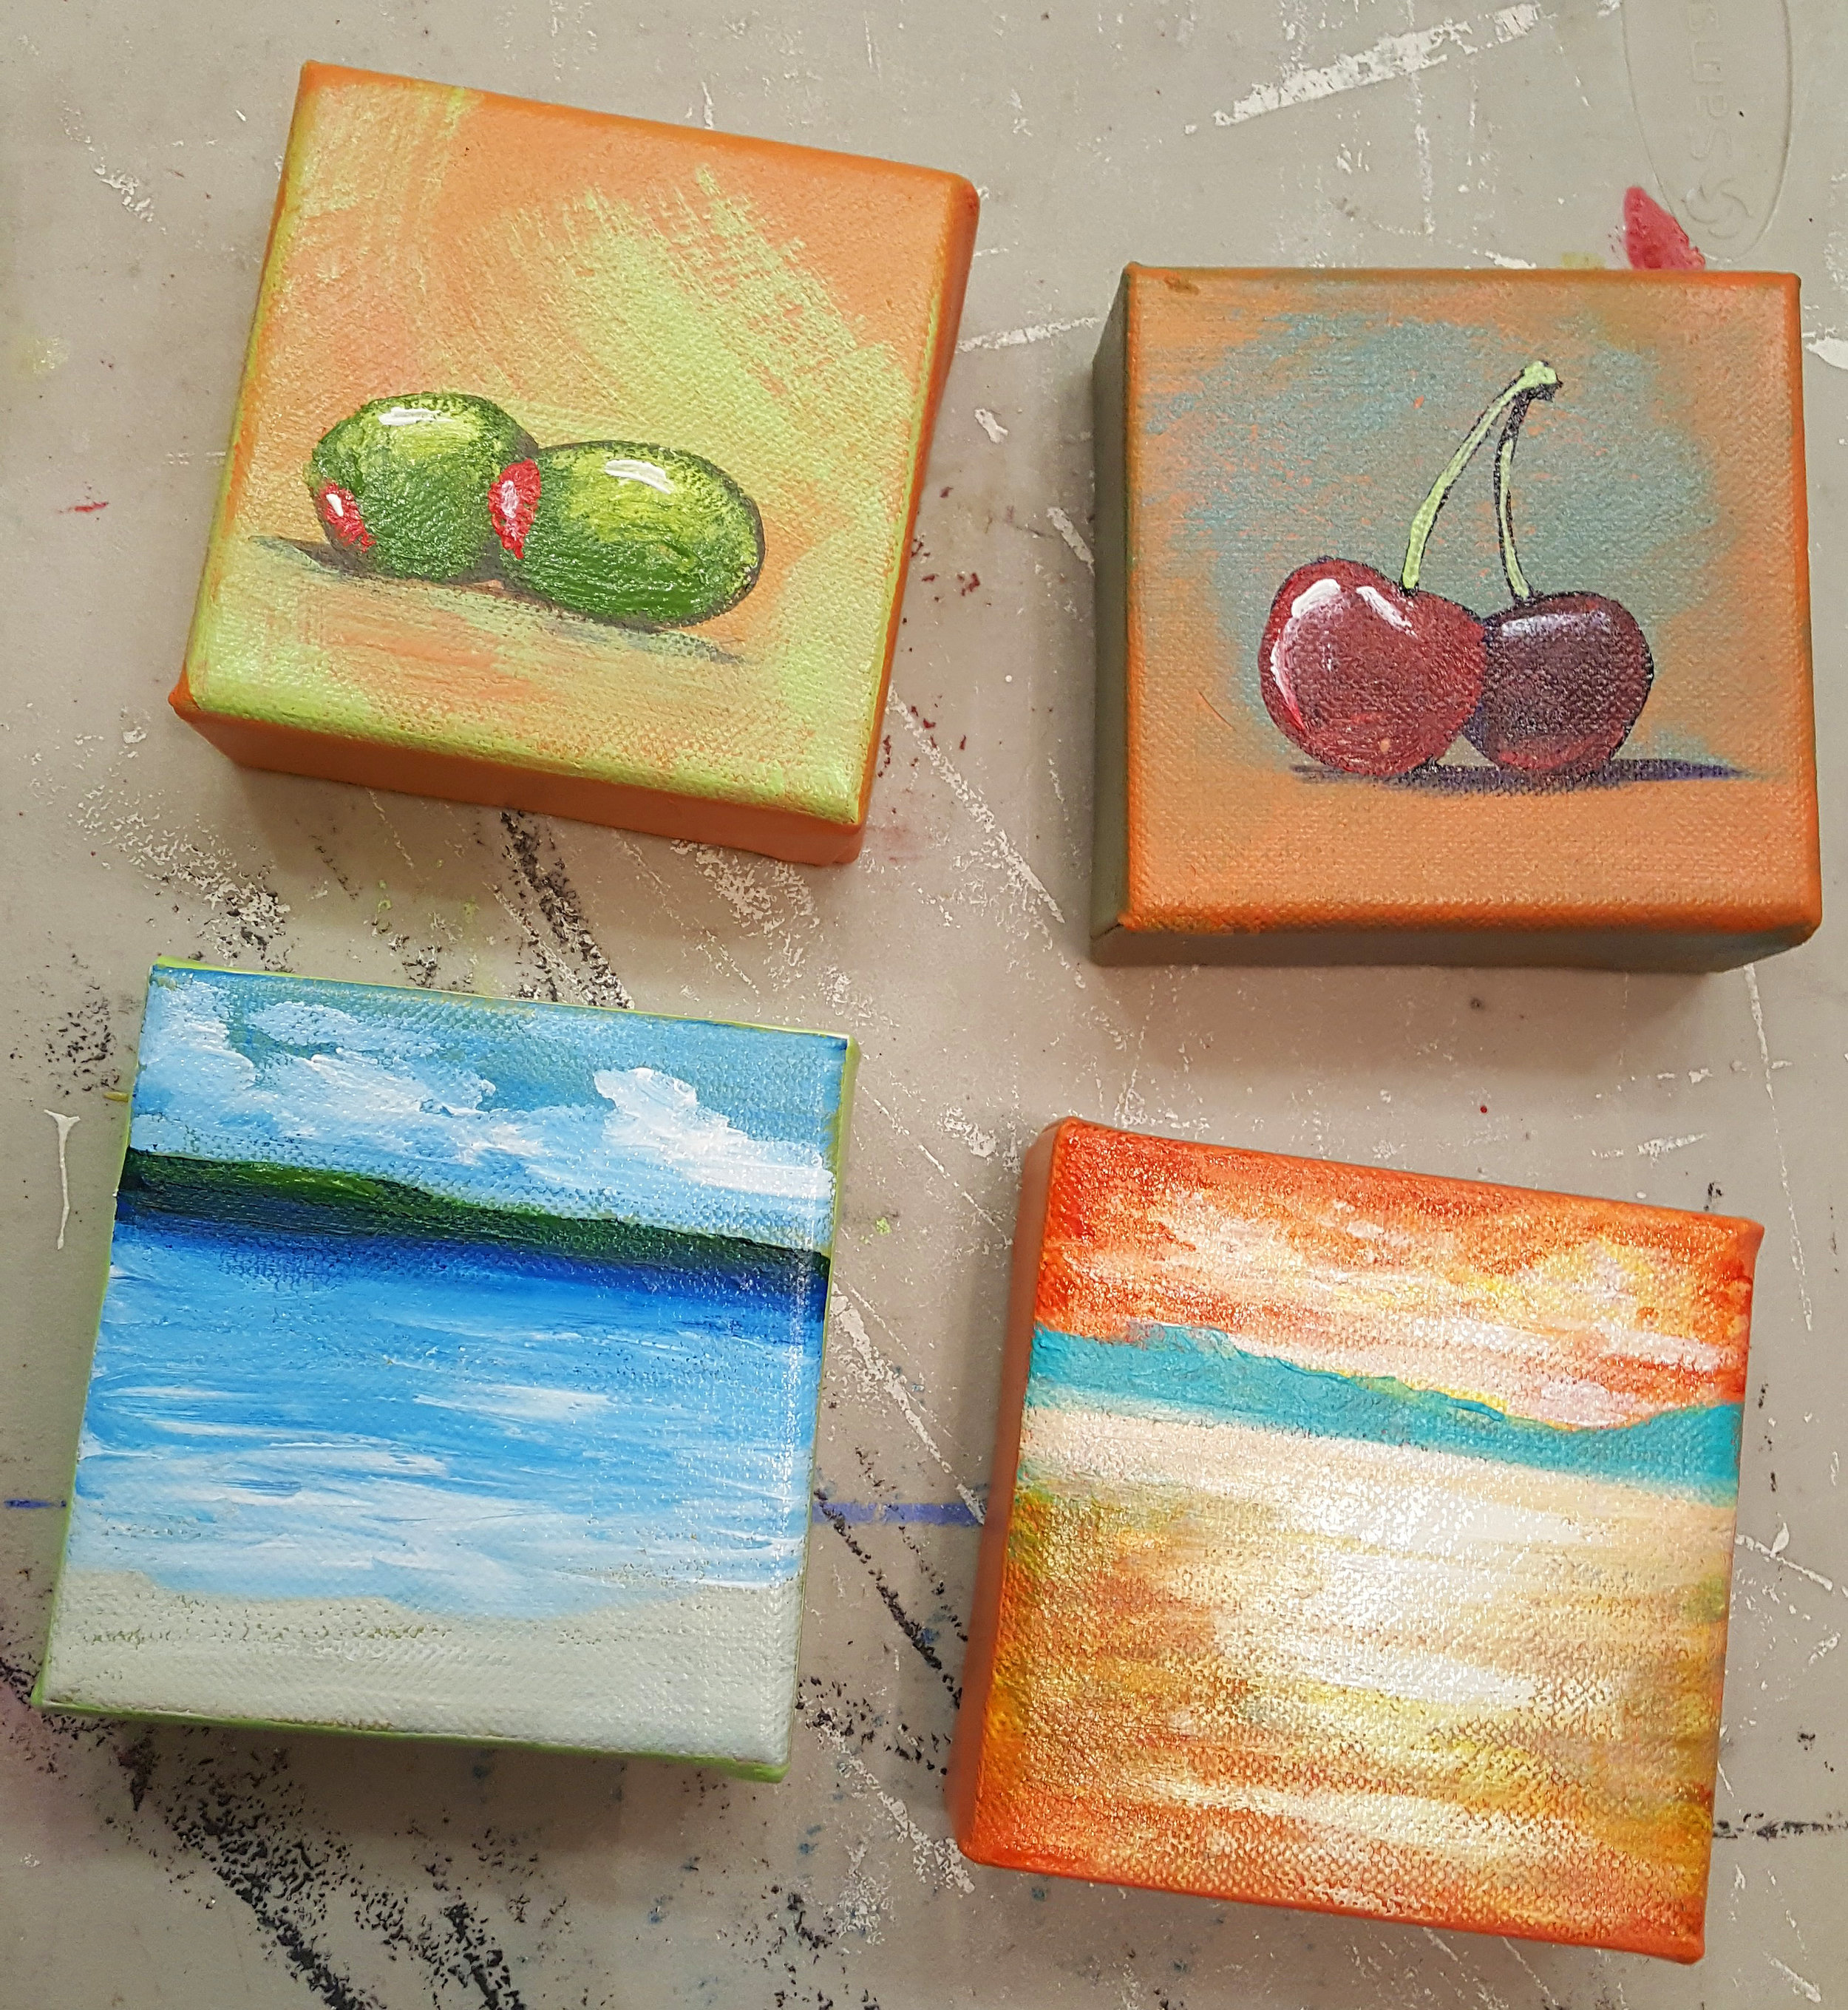 Cherries, Olives and Seascapes